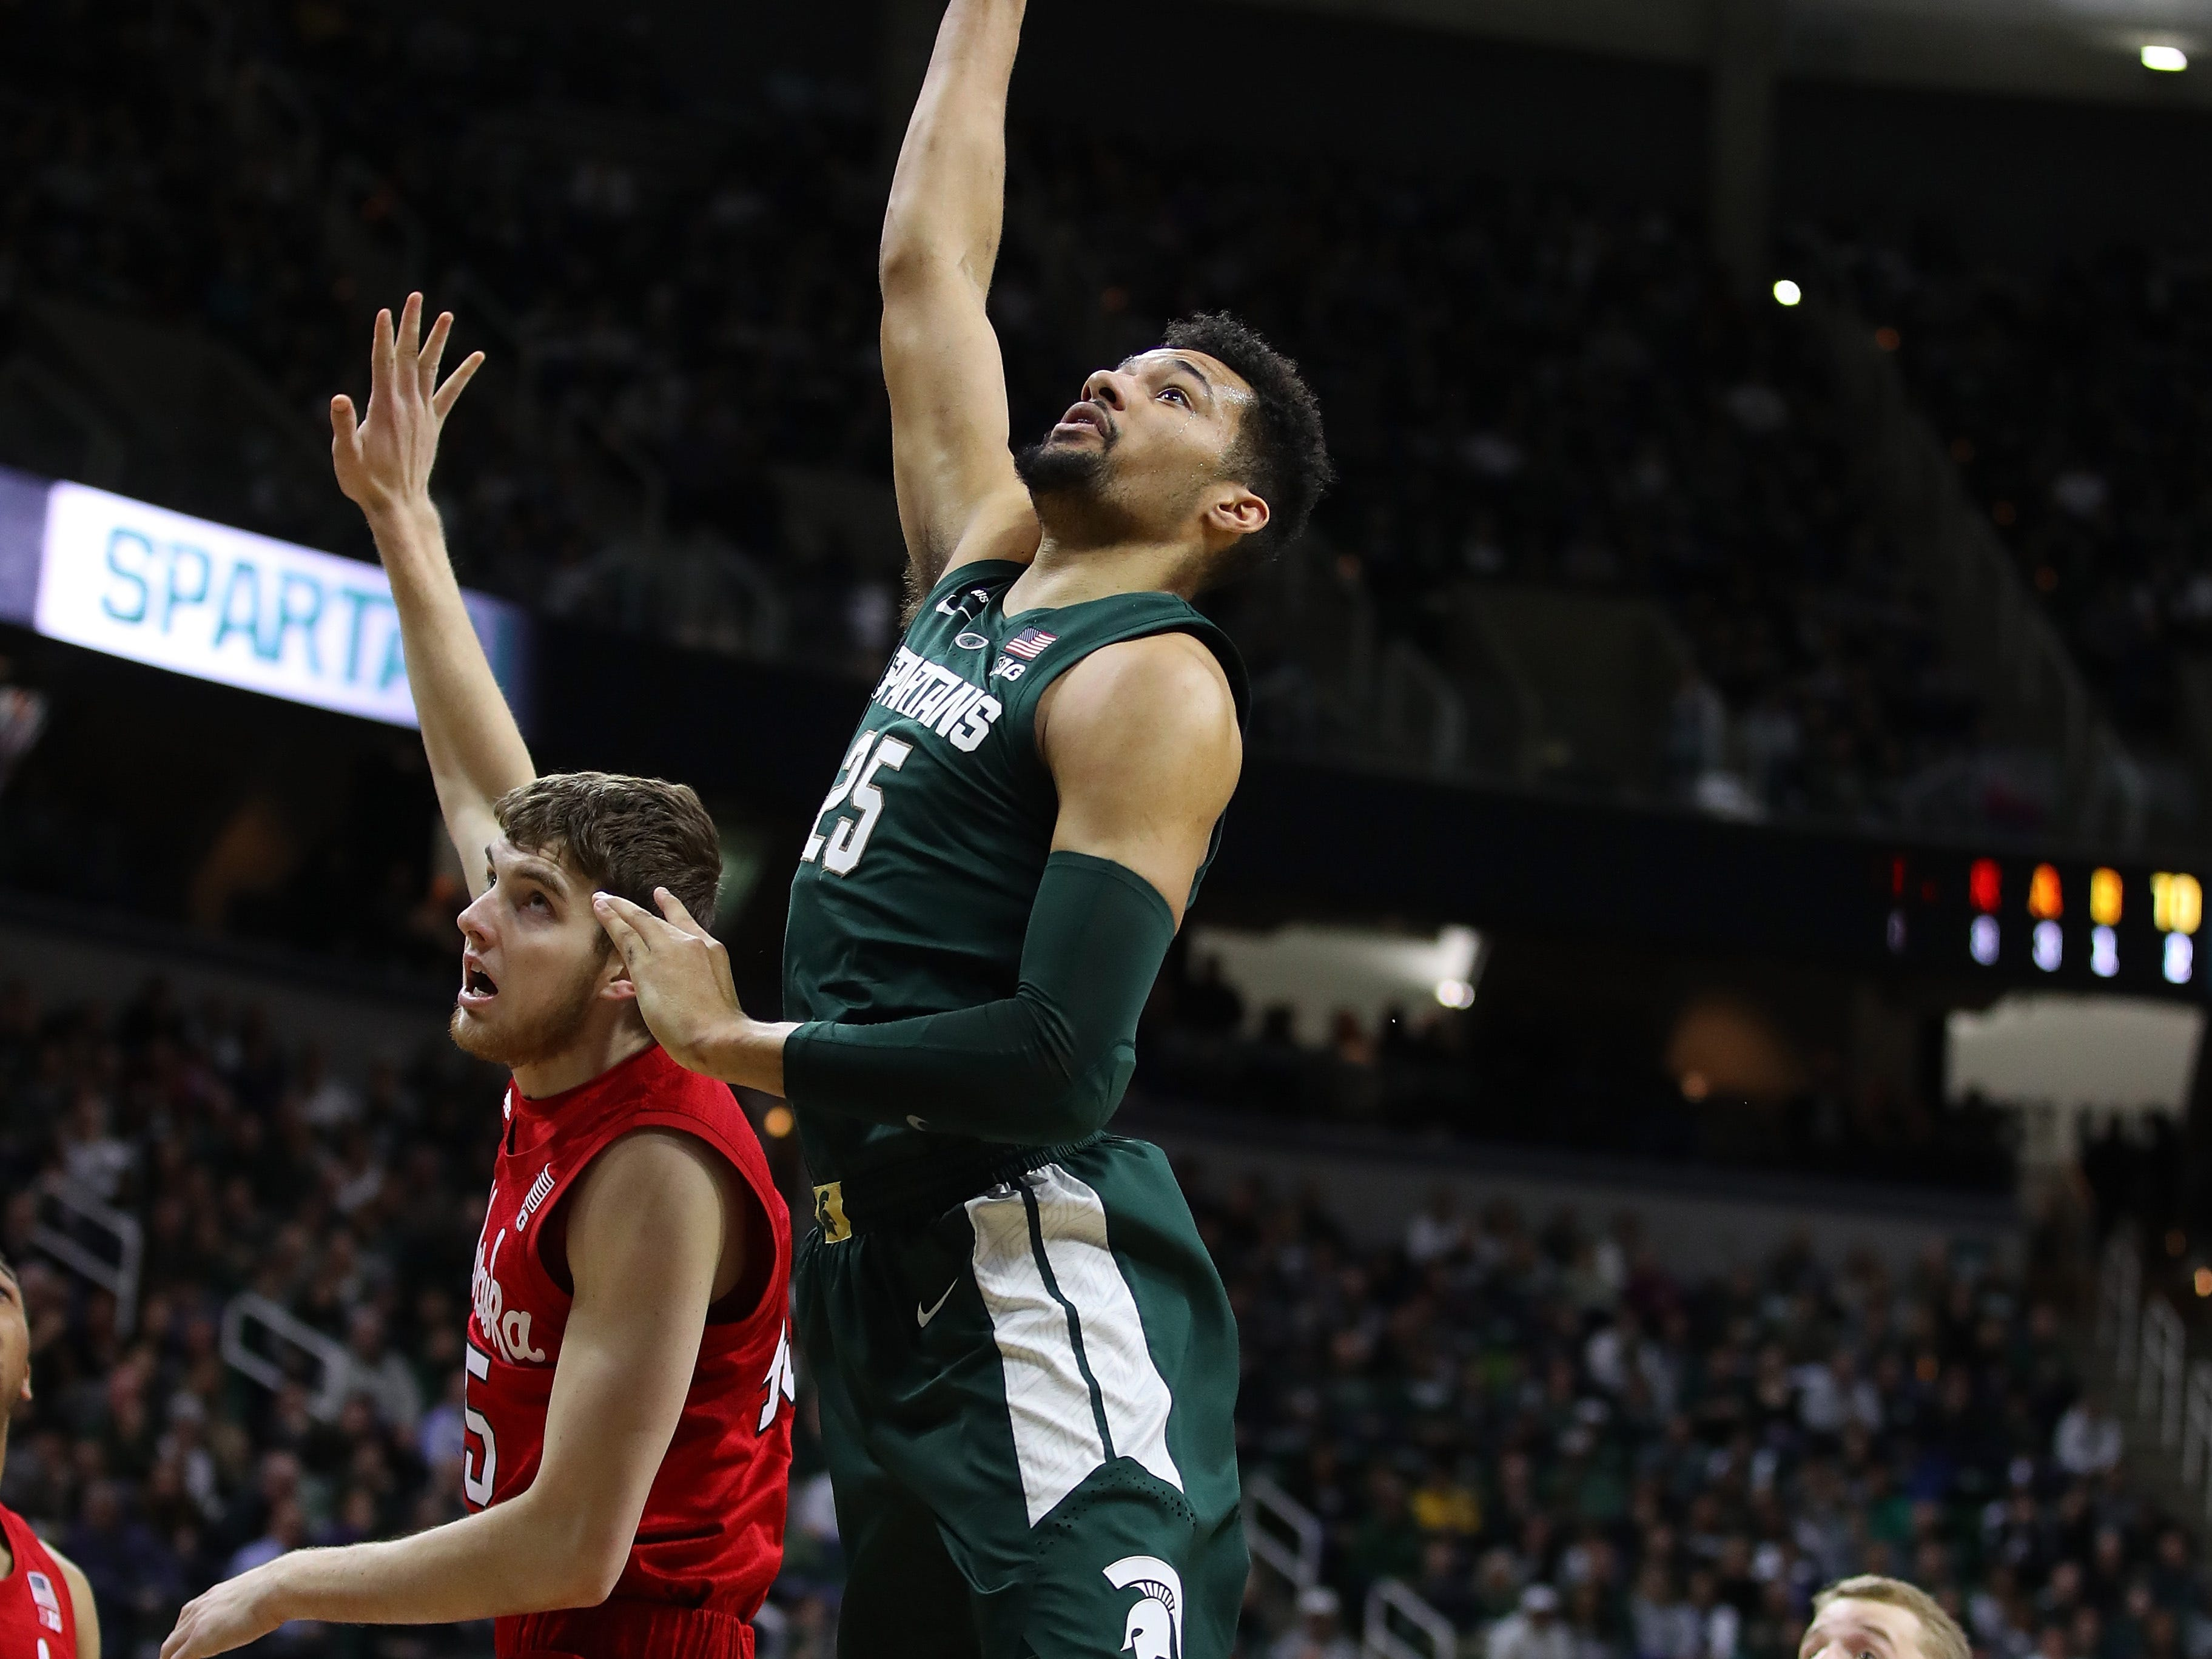 Kenny Goins (25) of the Michigan State Spartans takes a shot over Brady Heiman (45) of the Nebraska Cornhuskers during the first half at Breslin Center.